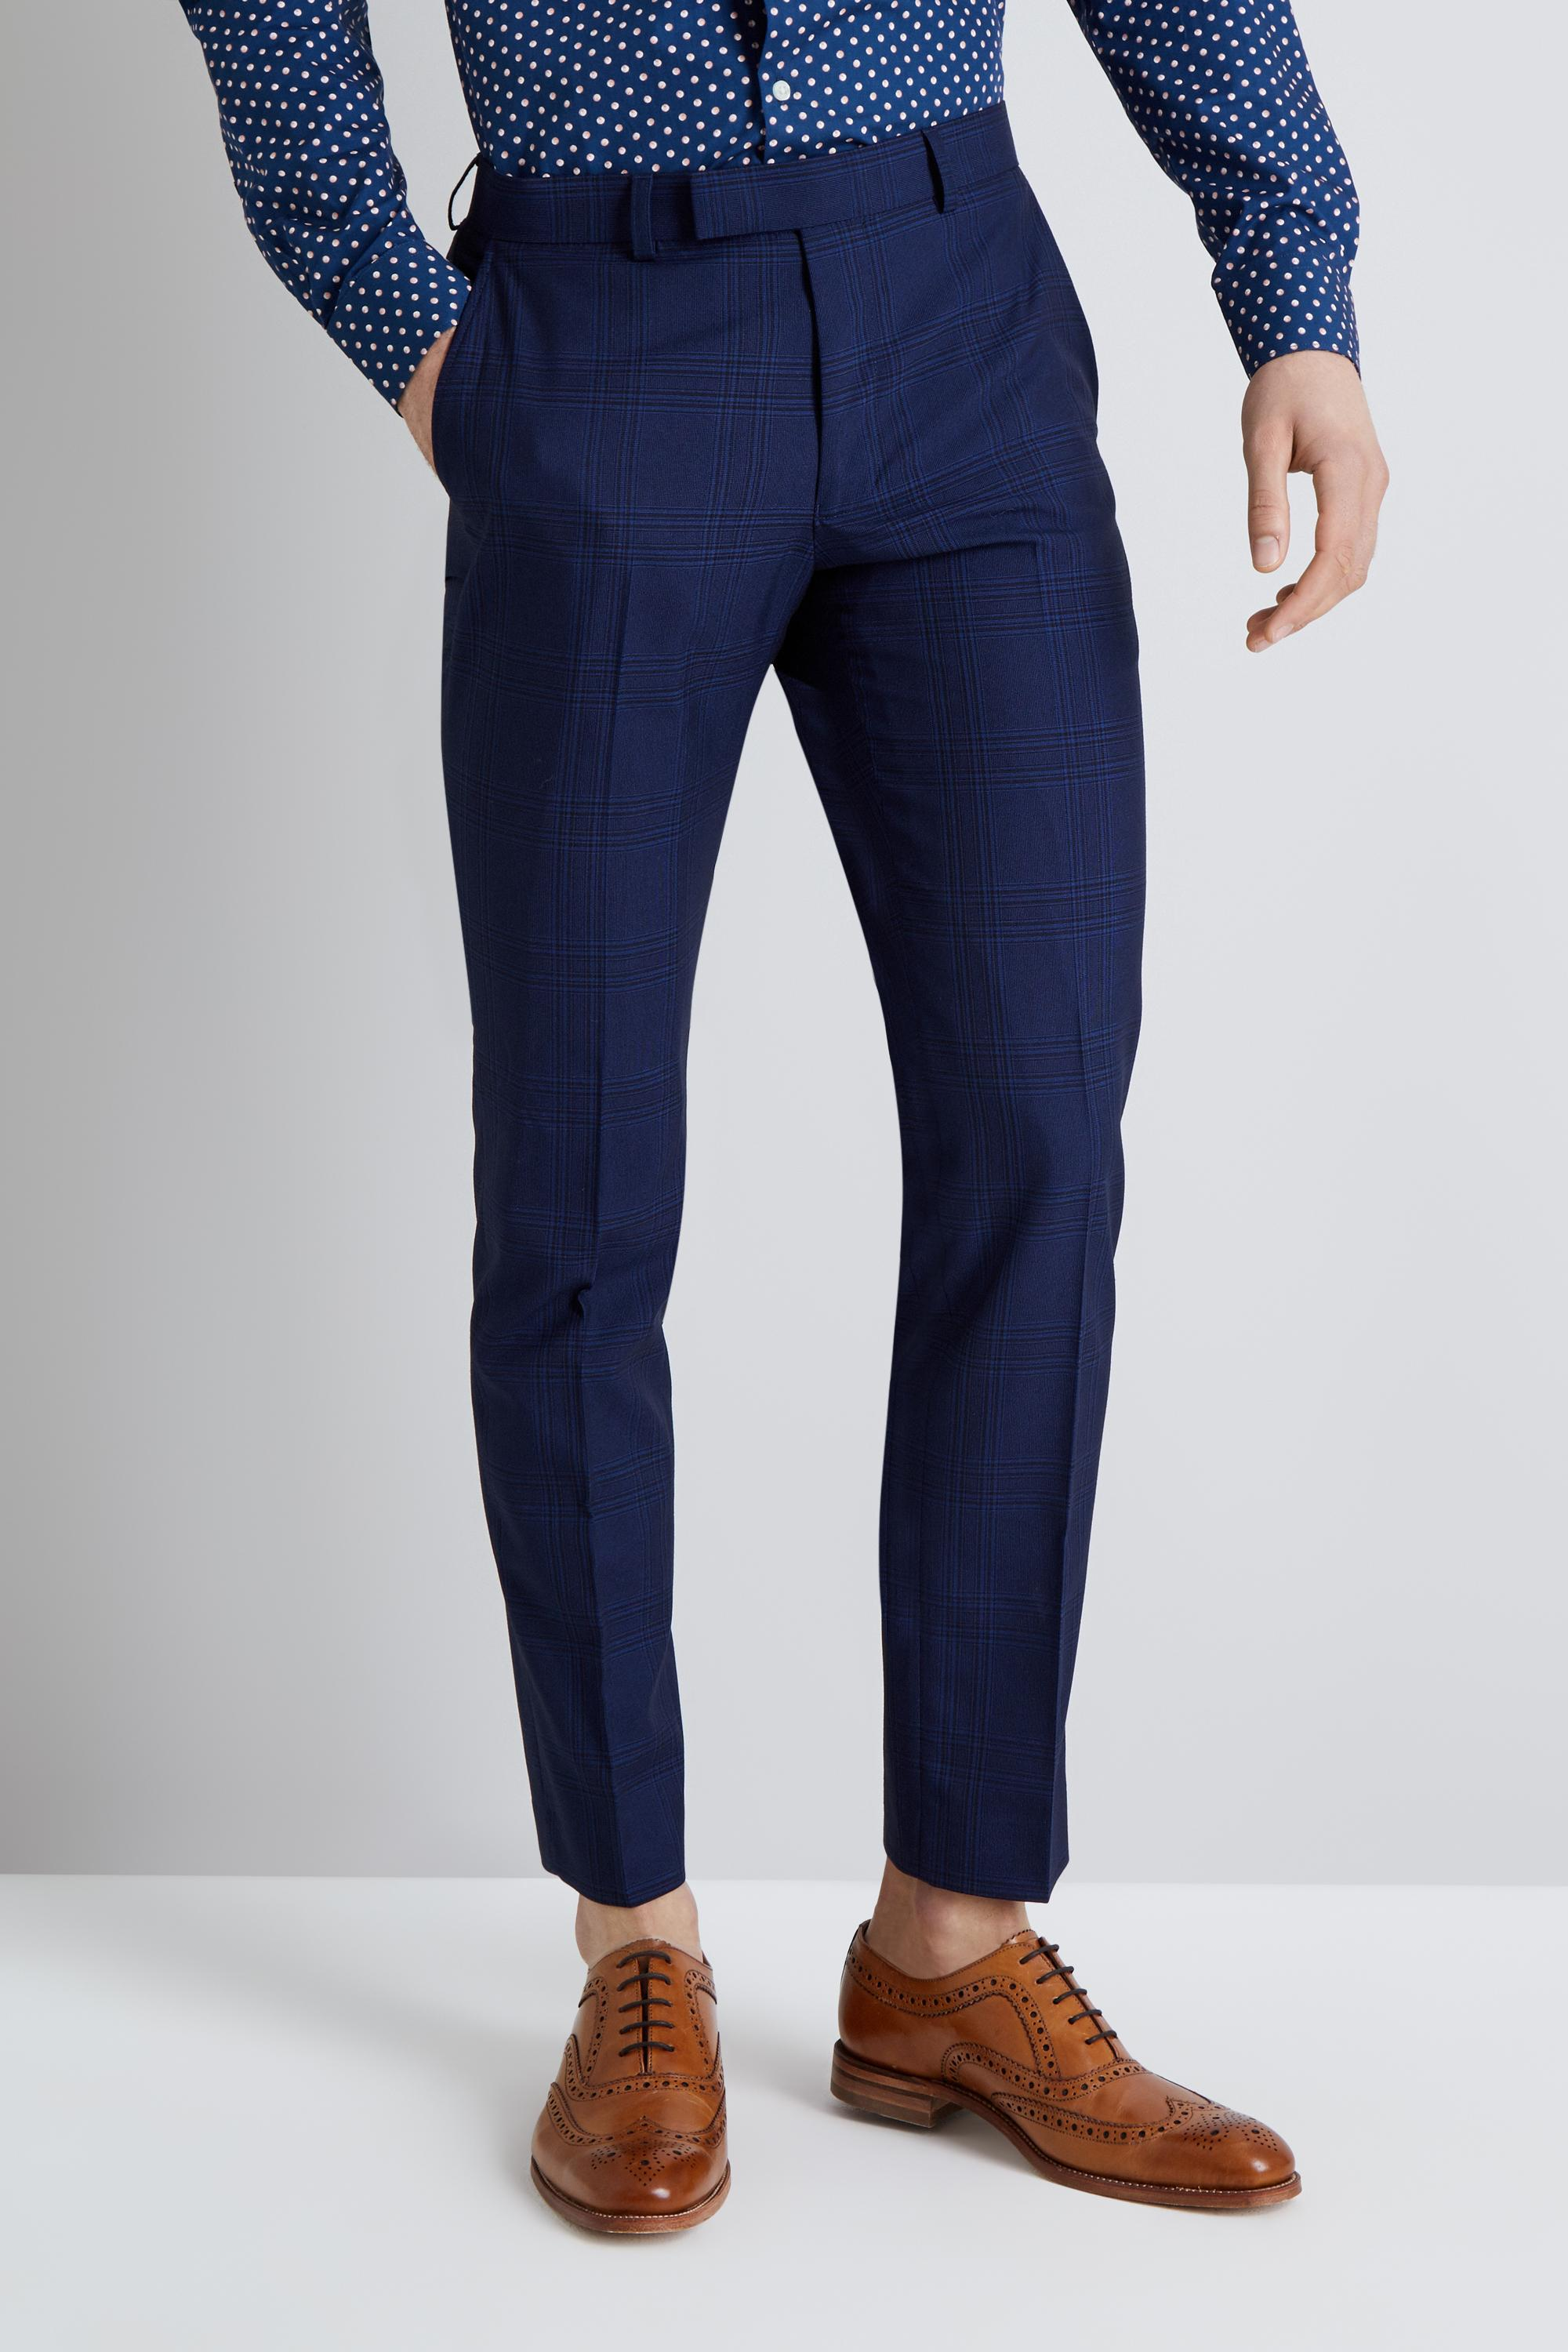 5cc2d50e5d5b0 Moss London Skinny Fit Blue Check Trousers in Blue for Men - Lyst